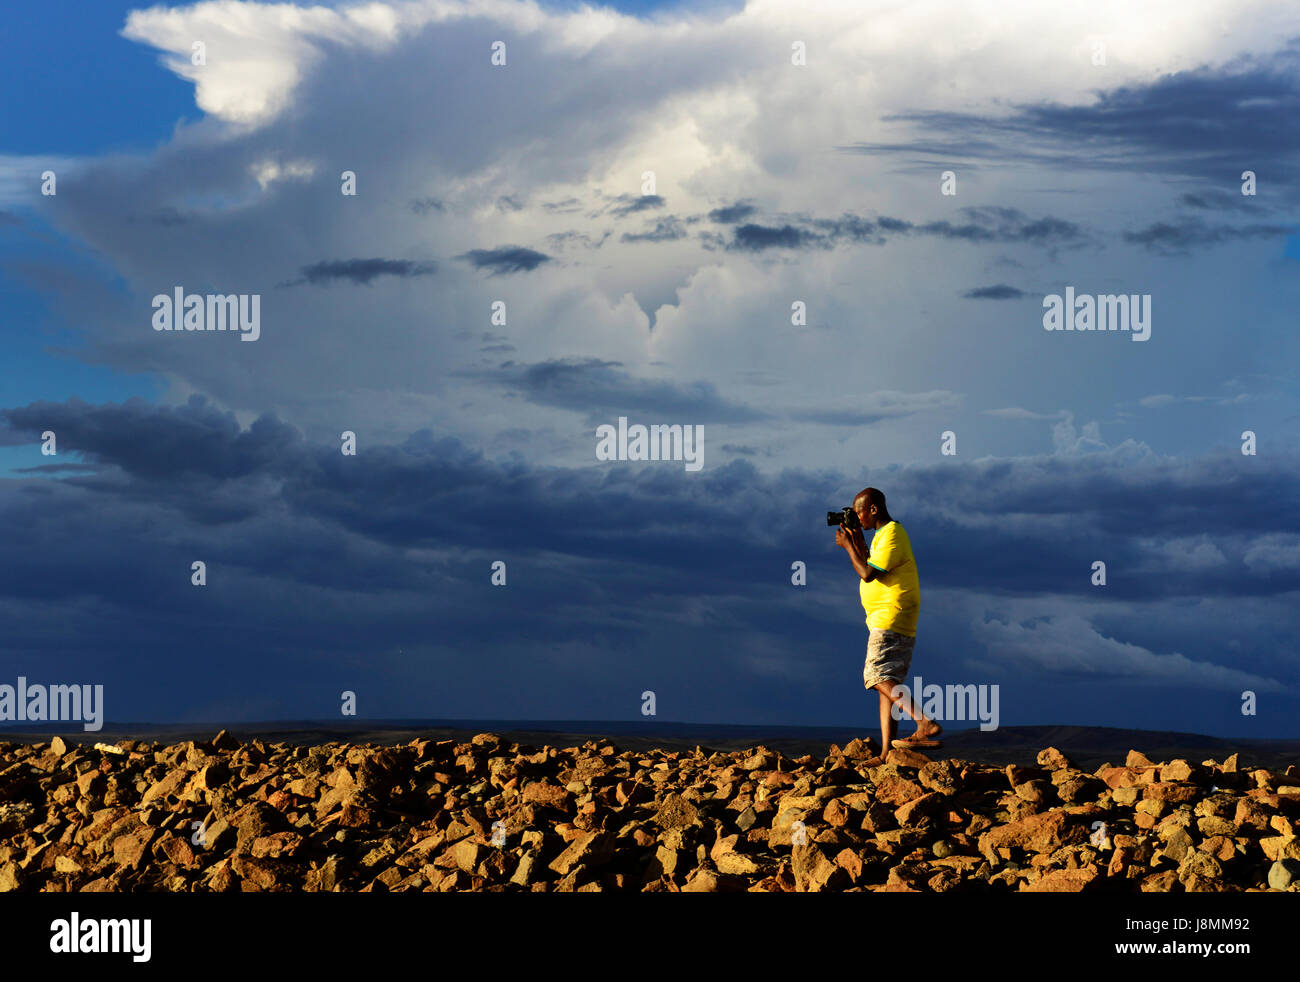 A photographer in action by Lake Turkana in Kenya. - Stock Image